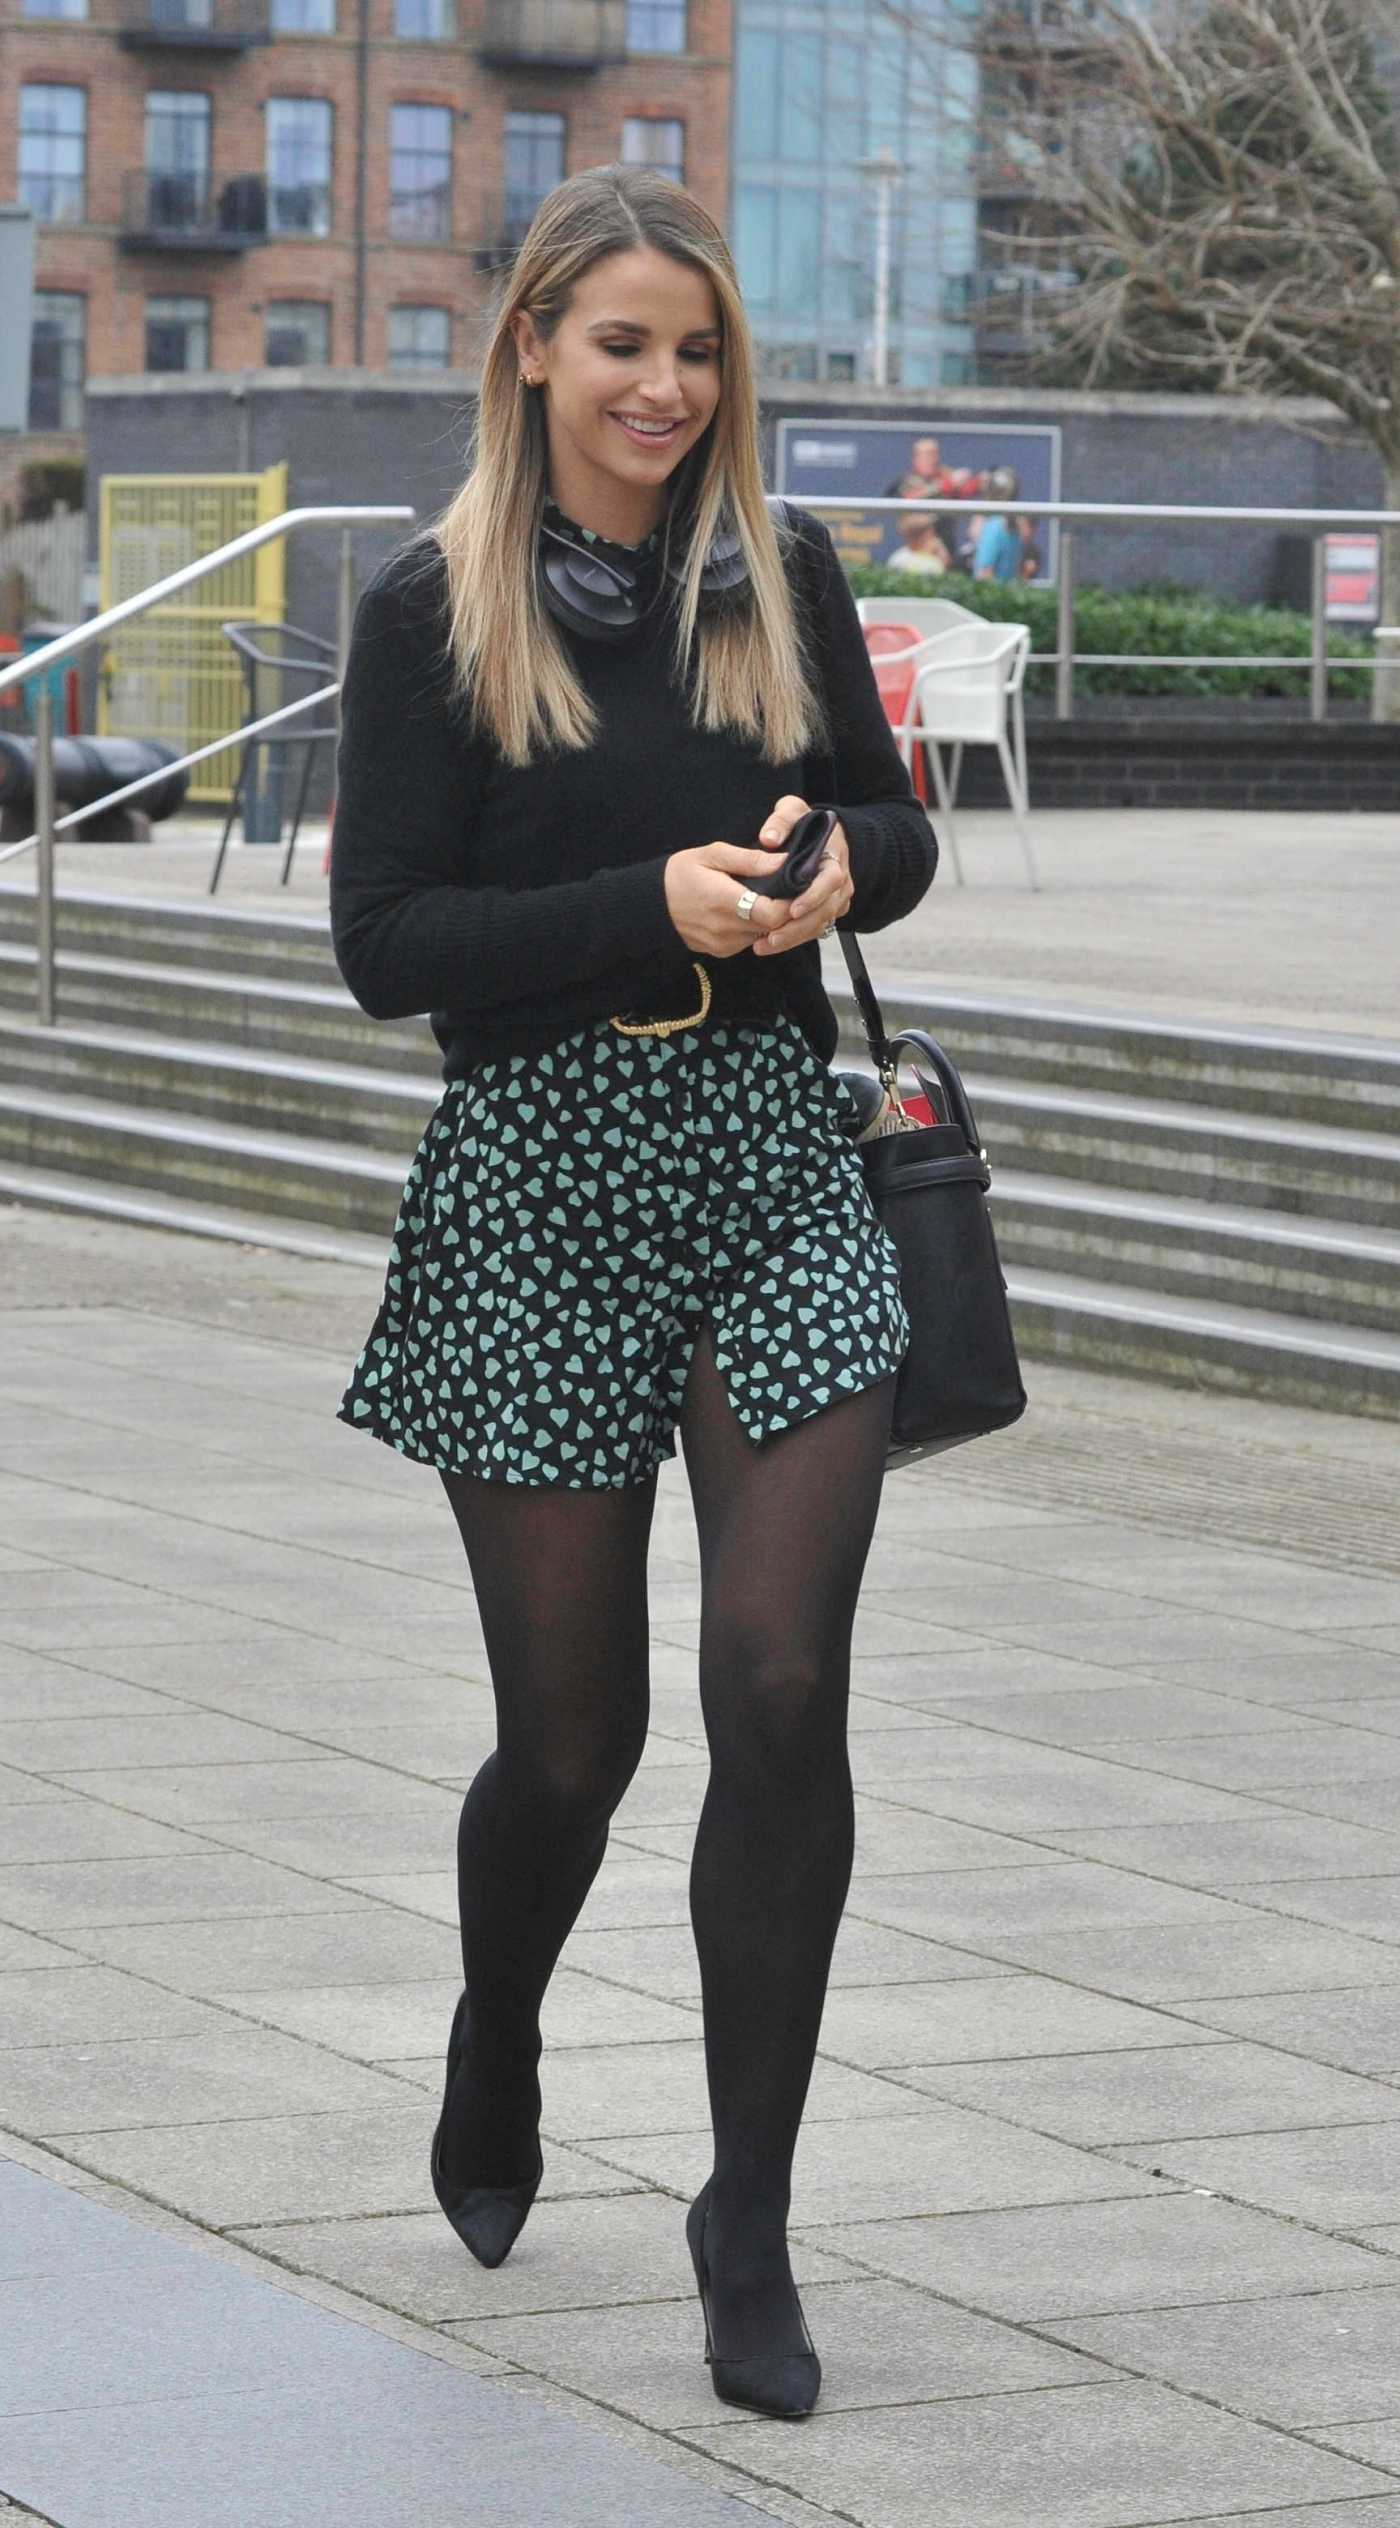 Vogue Williams in a Black Sweater Arrives at Steph's Pack Lunch in Leeds 03/17/2021